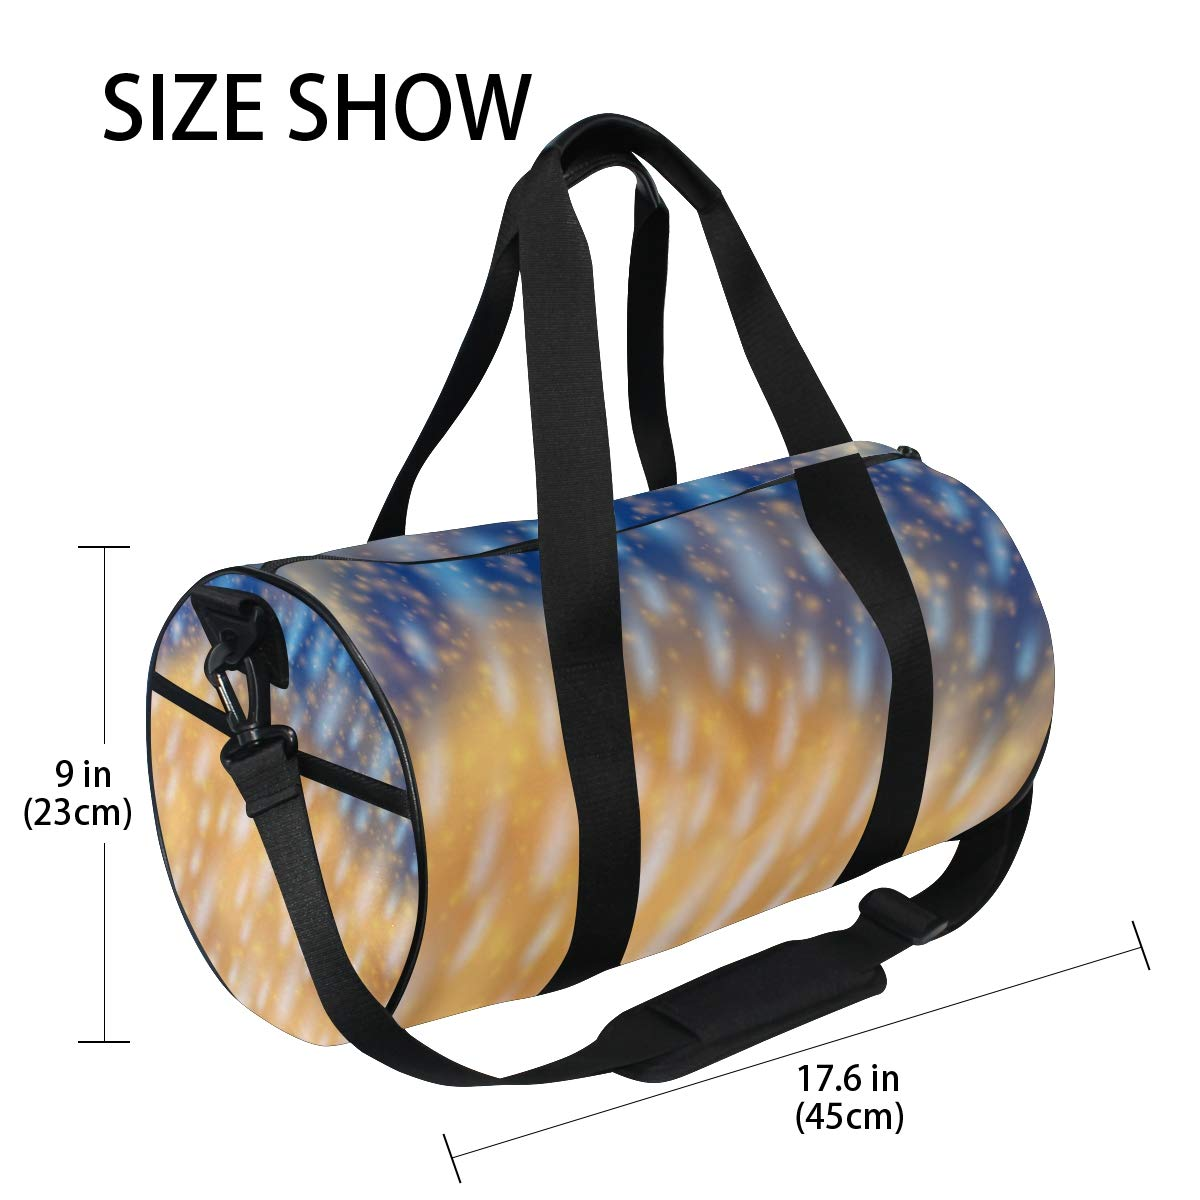 Desert Ocean RainWaterproof Non-Slip Wearable Crossbody Bag fitness bag Shoulder Bag